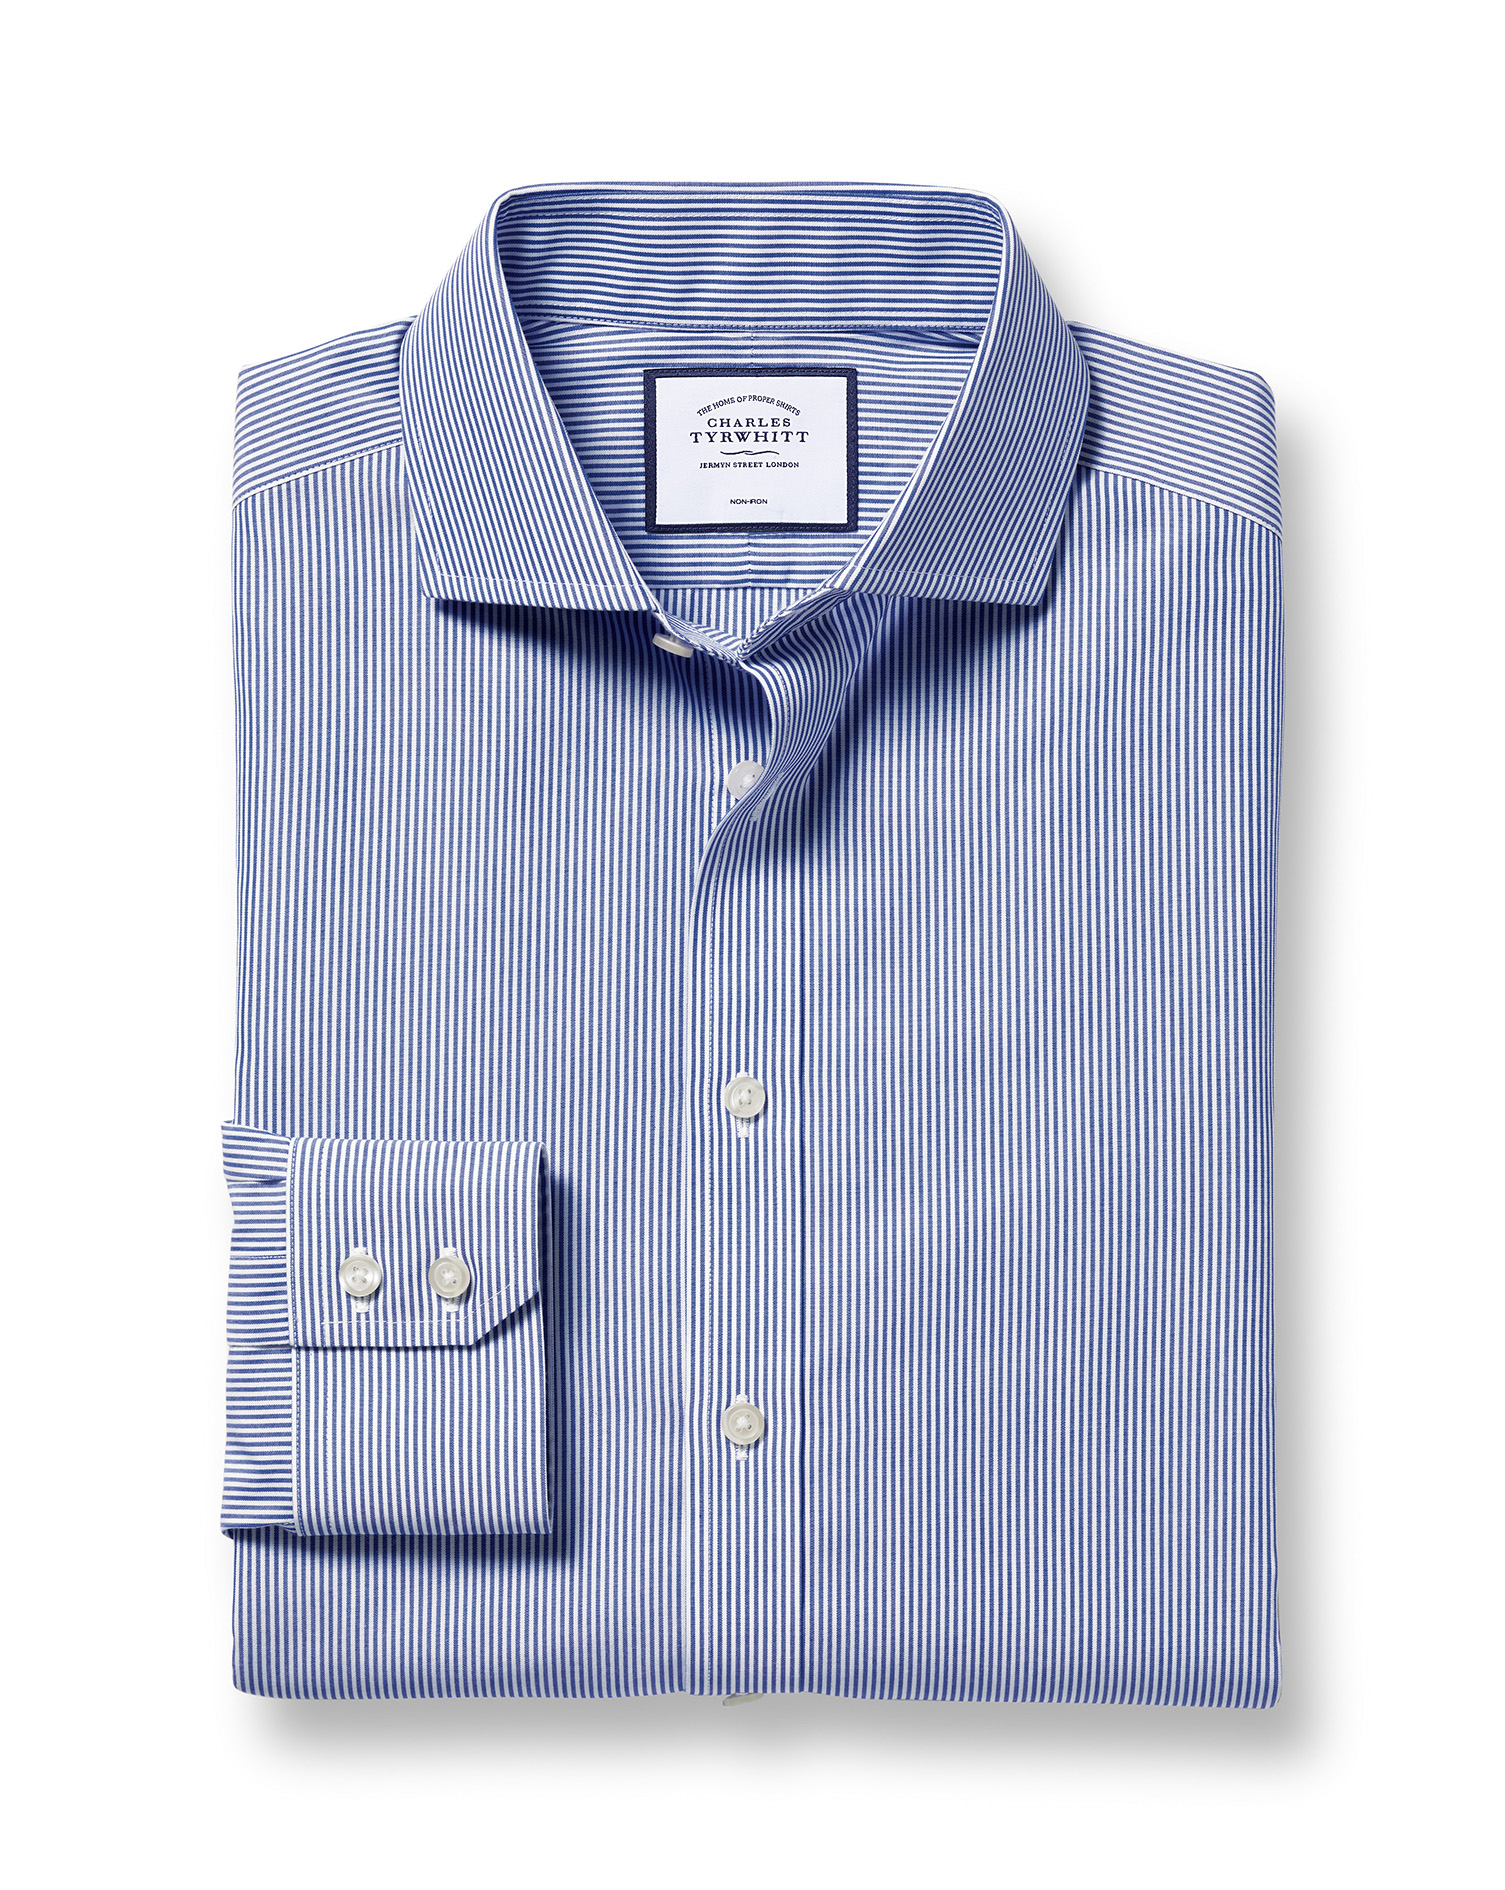 Extra Slim Fit Non-Iron Cutaway Navy Bengal Stripe Cotton Formal Shirt Single Cuff Size 17.5/36 by C